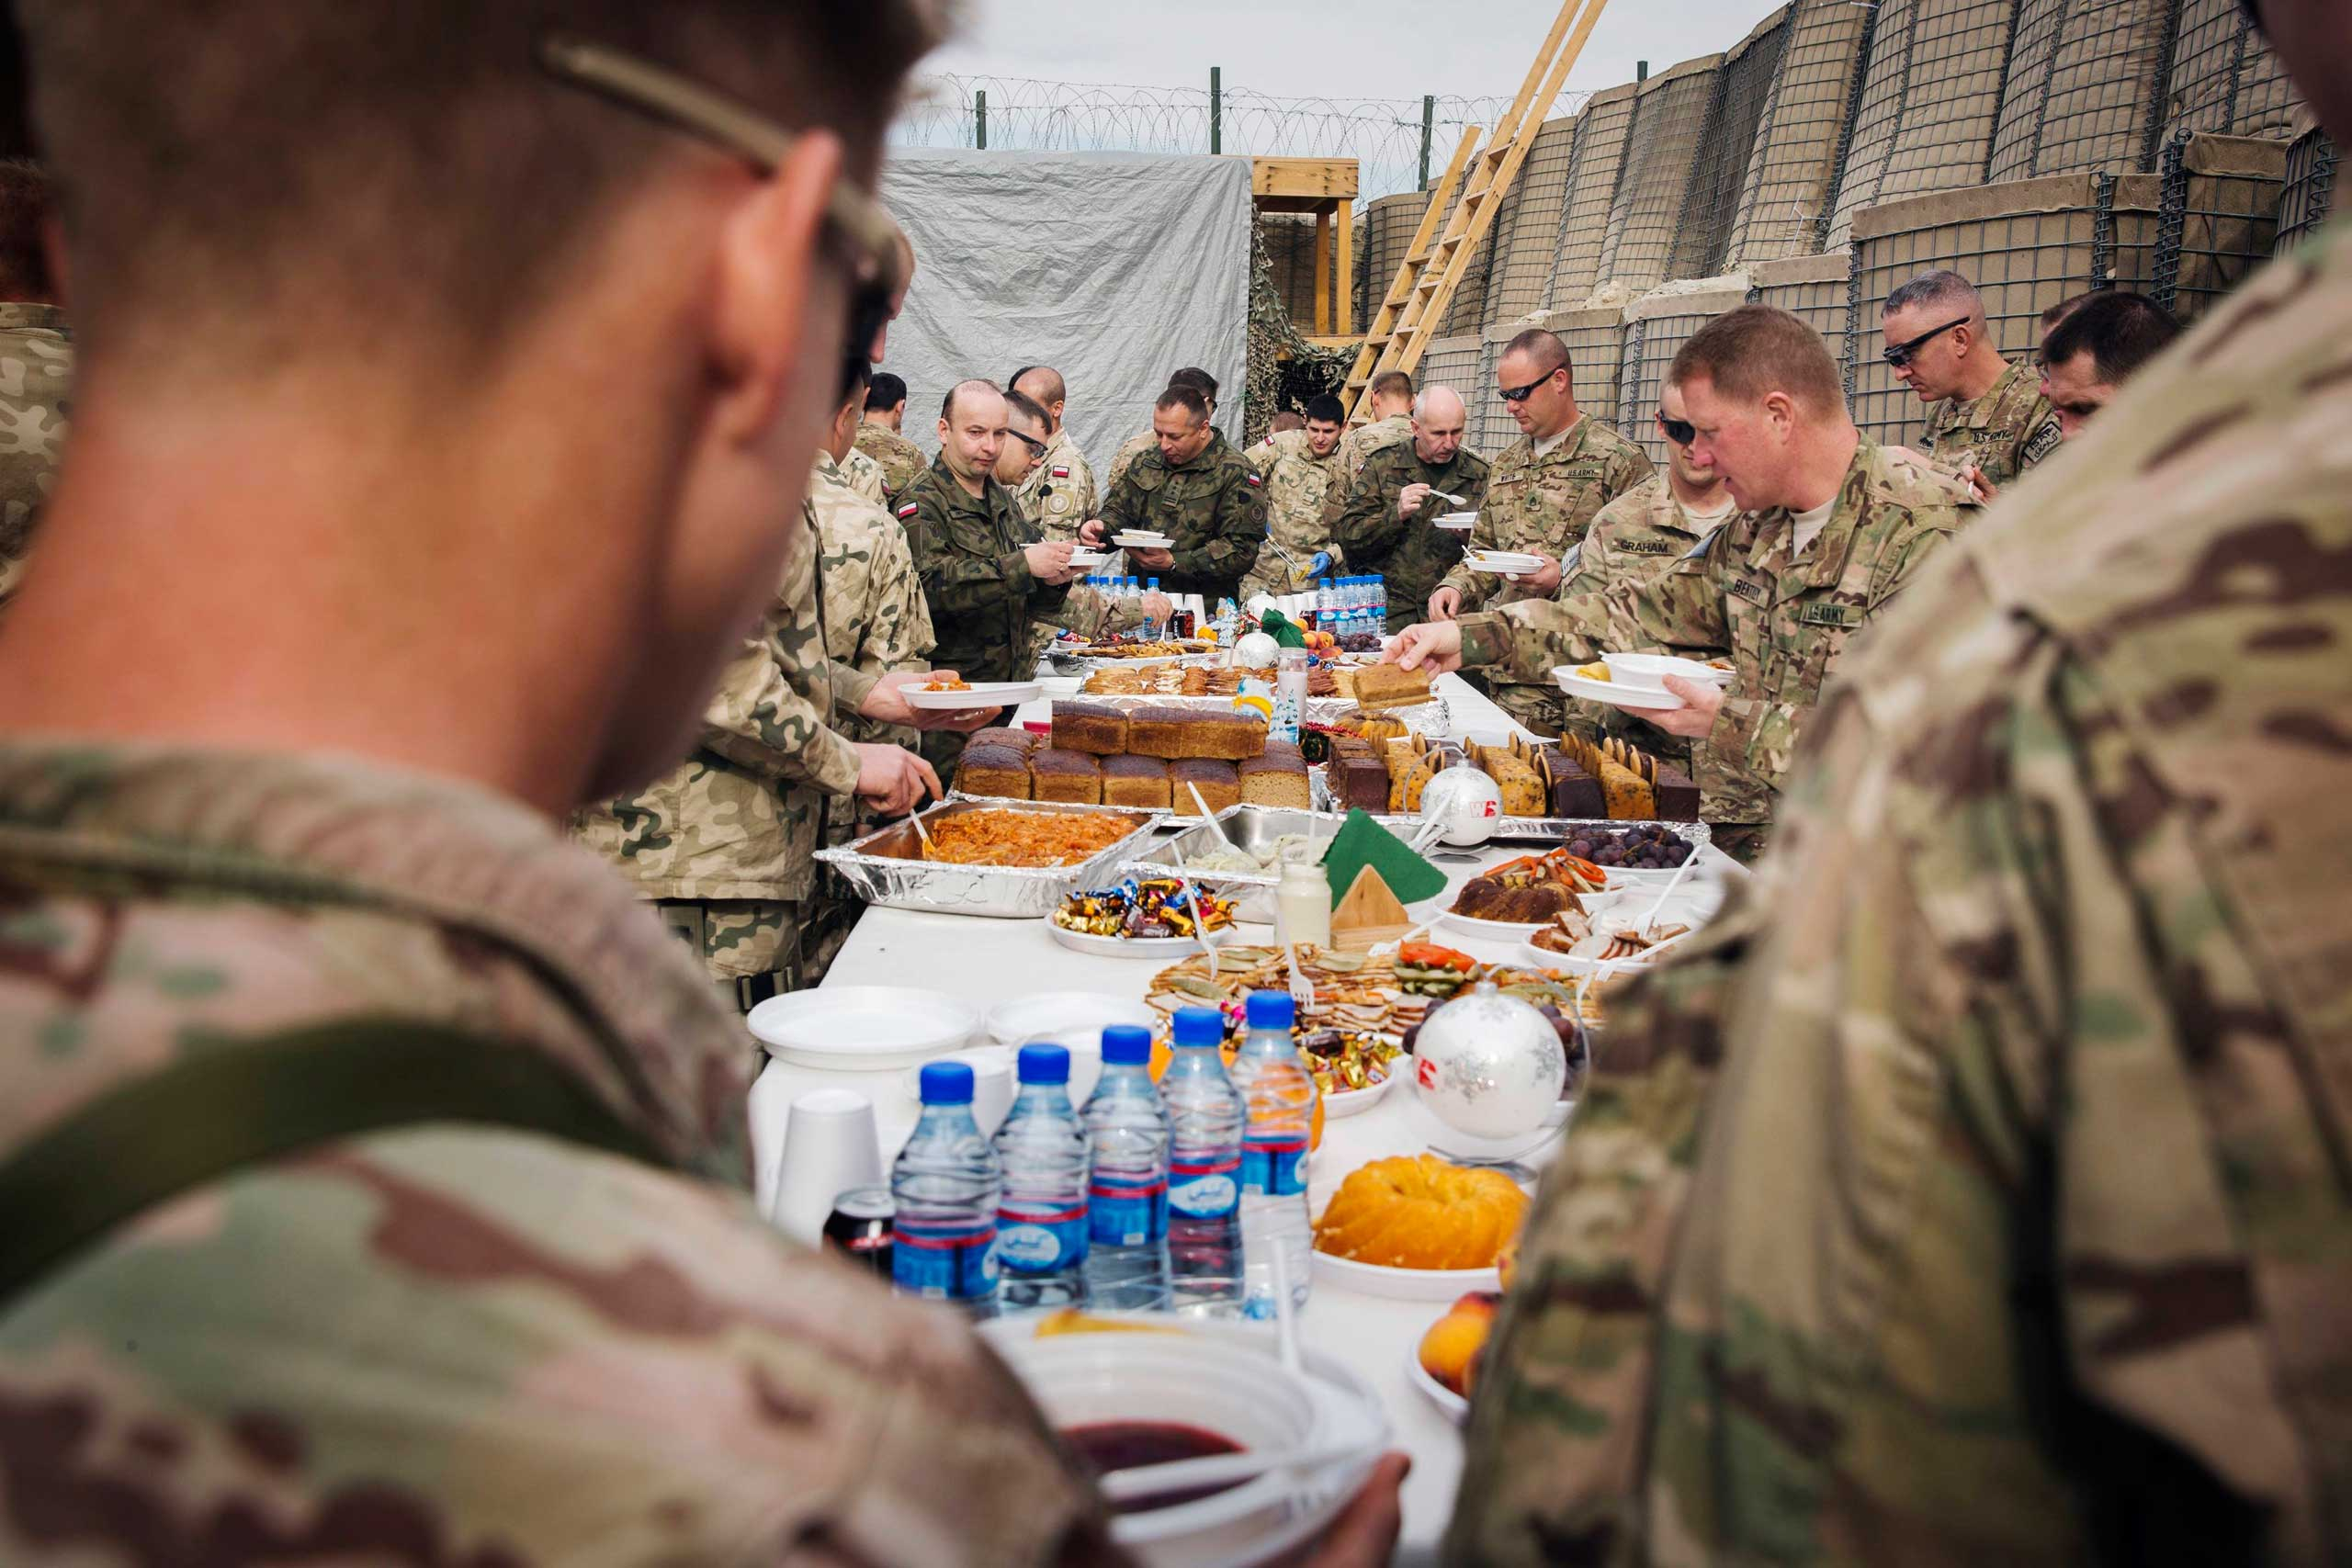 Brigadier General Christopher Bentley (2nd R) and U.S. soldiers from the 3rd Cavalry Regiment take part in a Christmas Eve celebration on forward operating base Gamberi in the Laghman province of Afghanistan on Dec. 24, 2014.